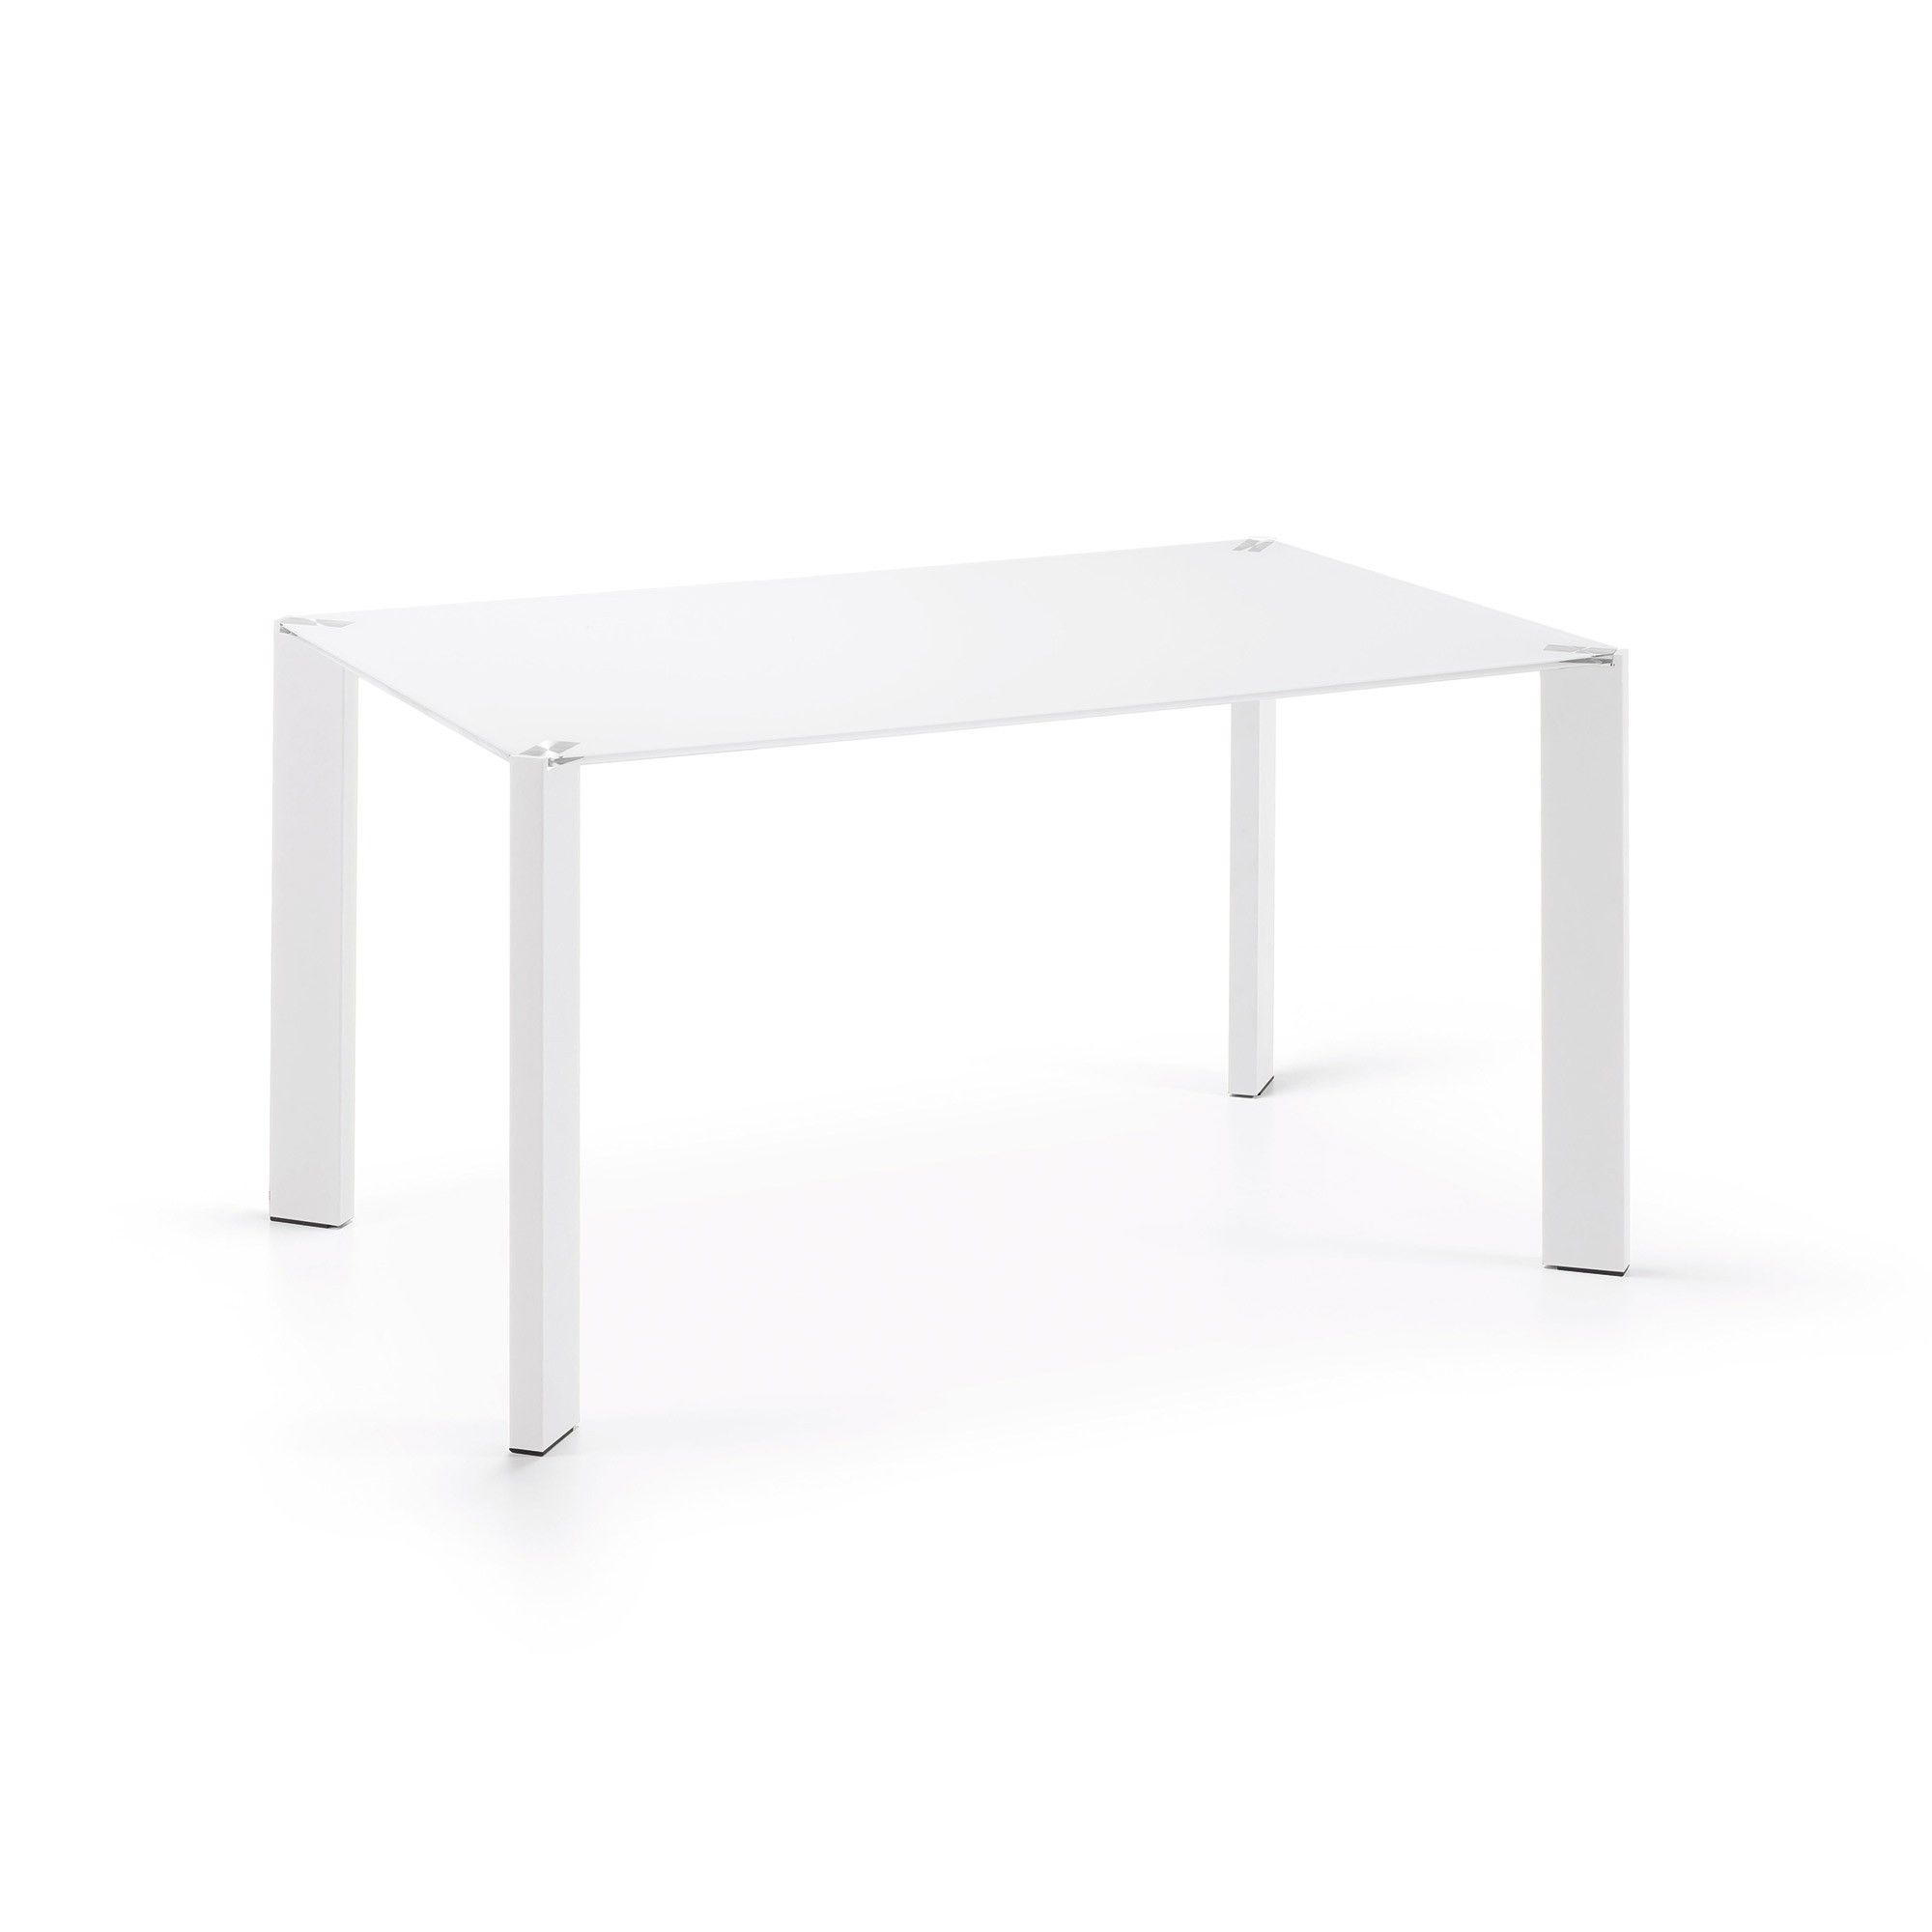 Table Spot 140x90 cm, blanc